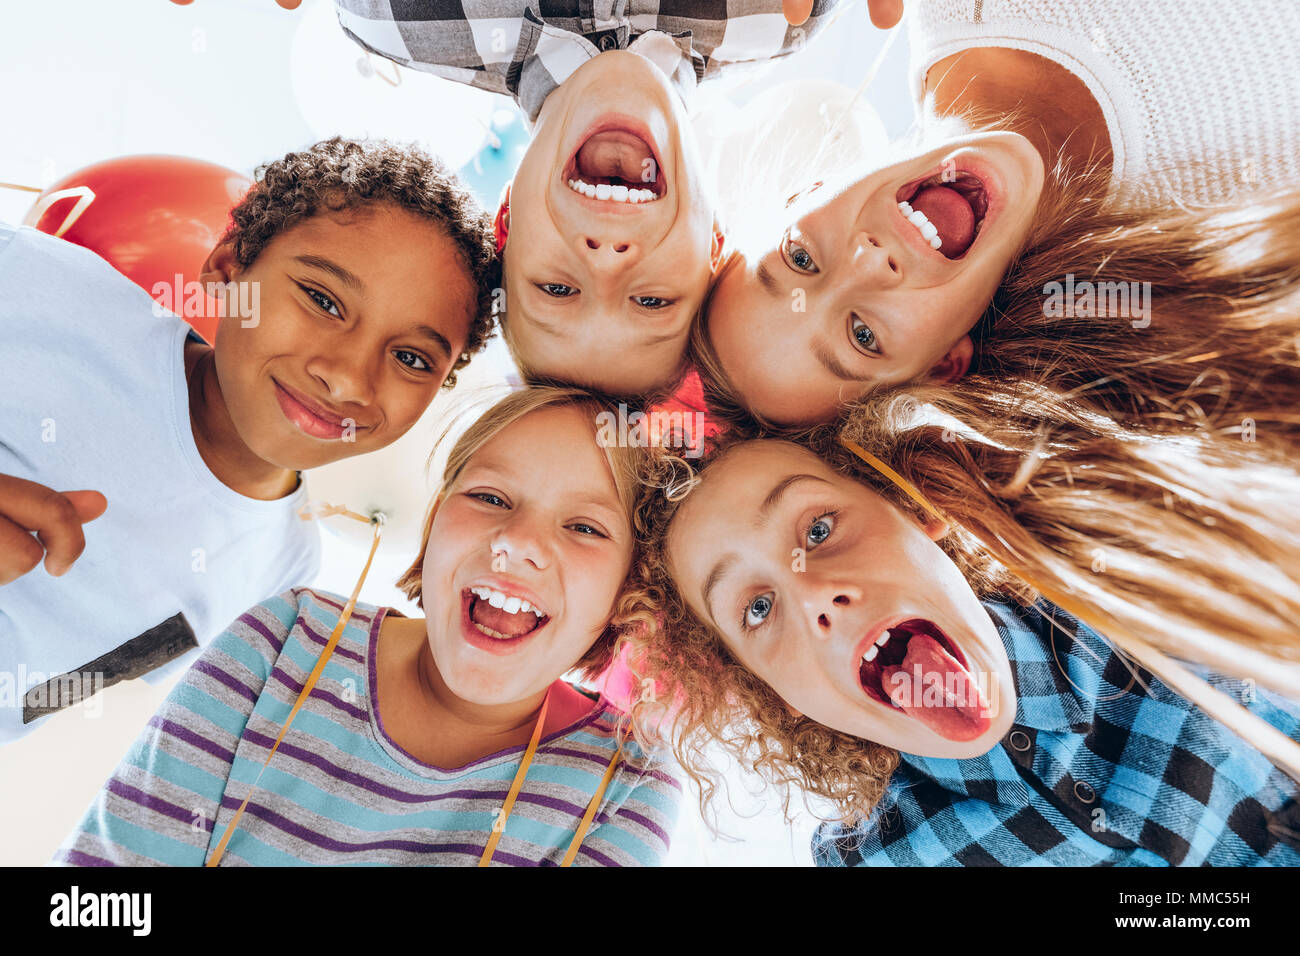 Group of children friends laughing and having fun - Stock Image